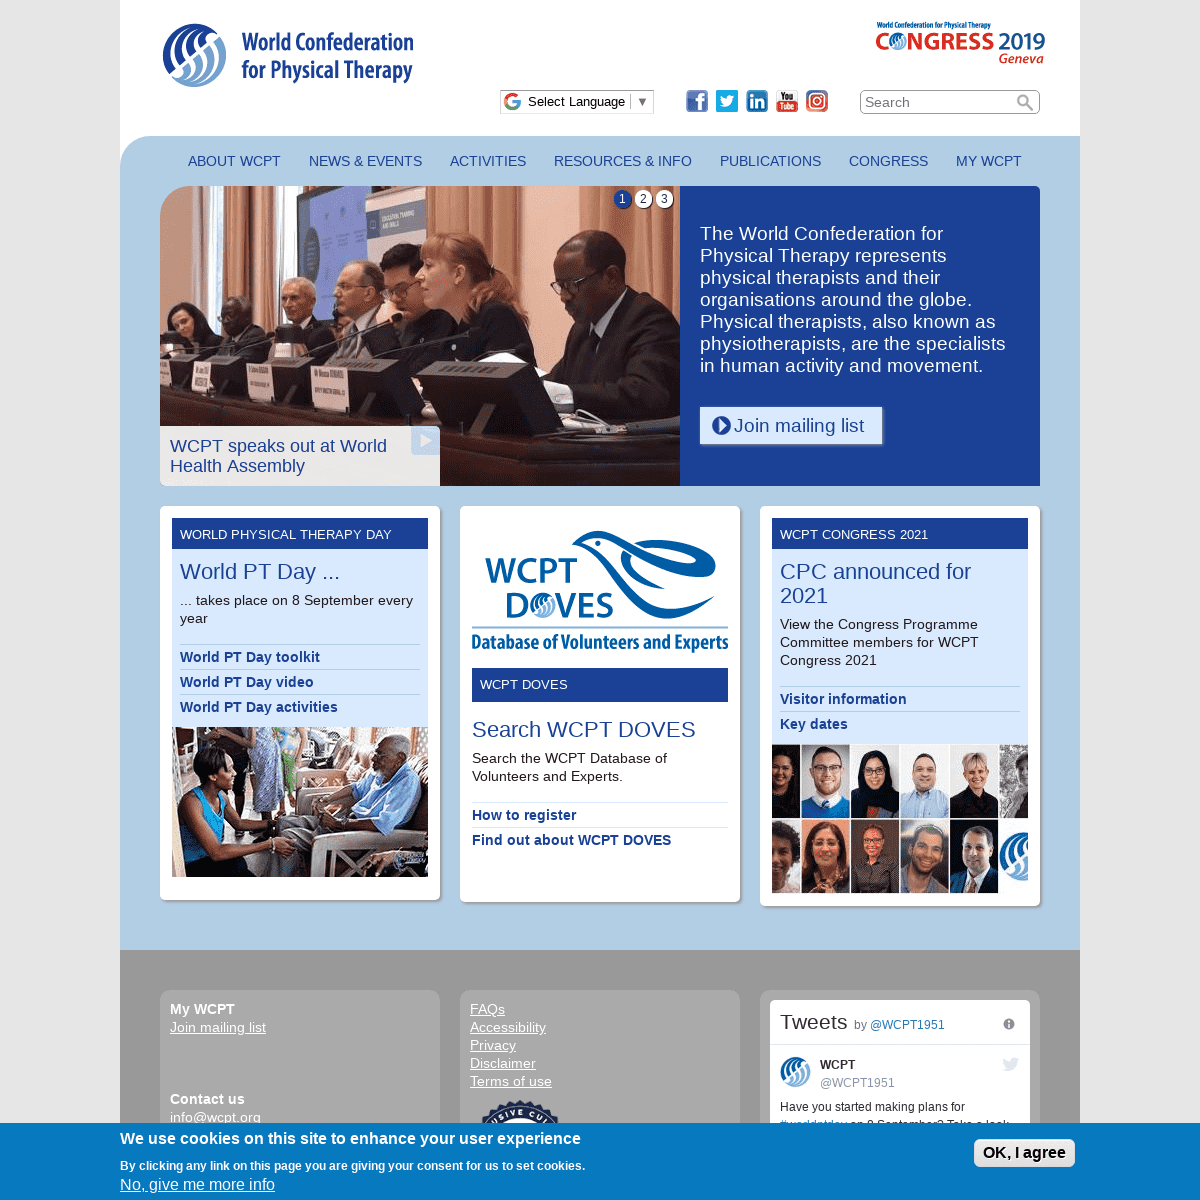 ArchiveBay.com - wcpt.org - Home page - World Confederation for Physical Therapy